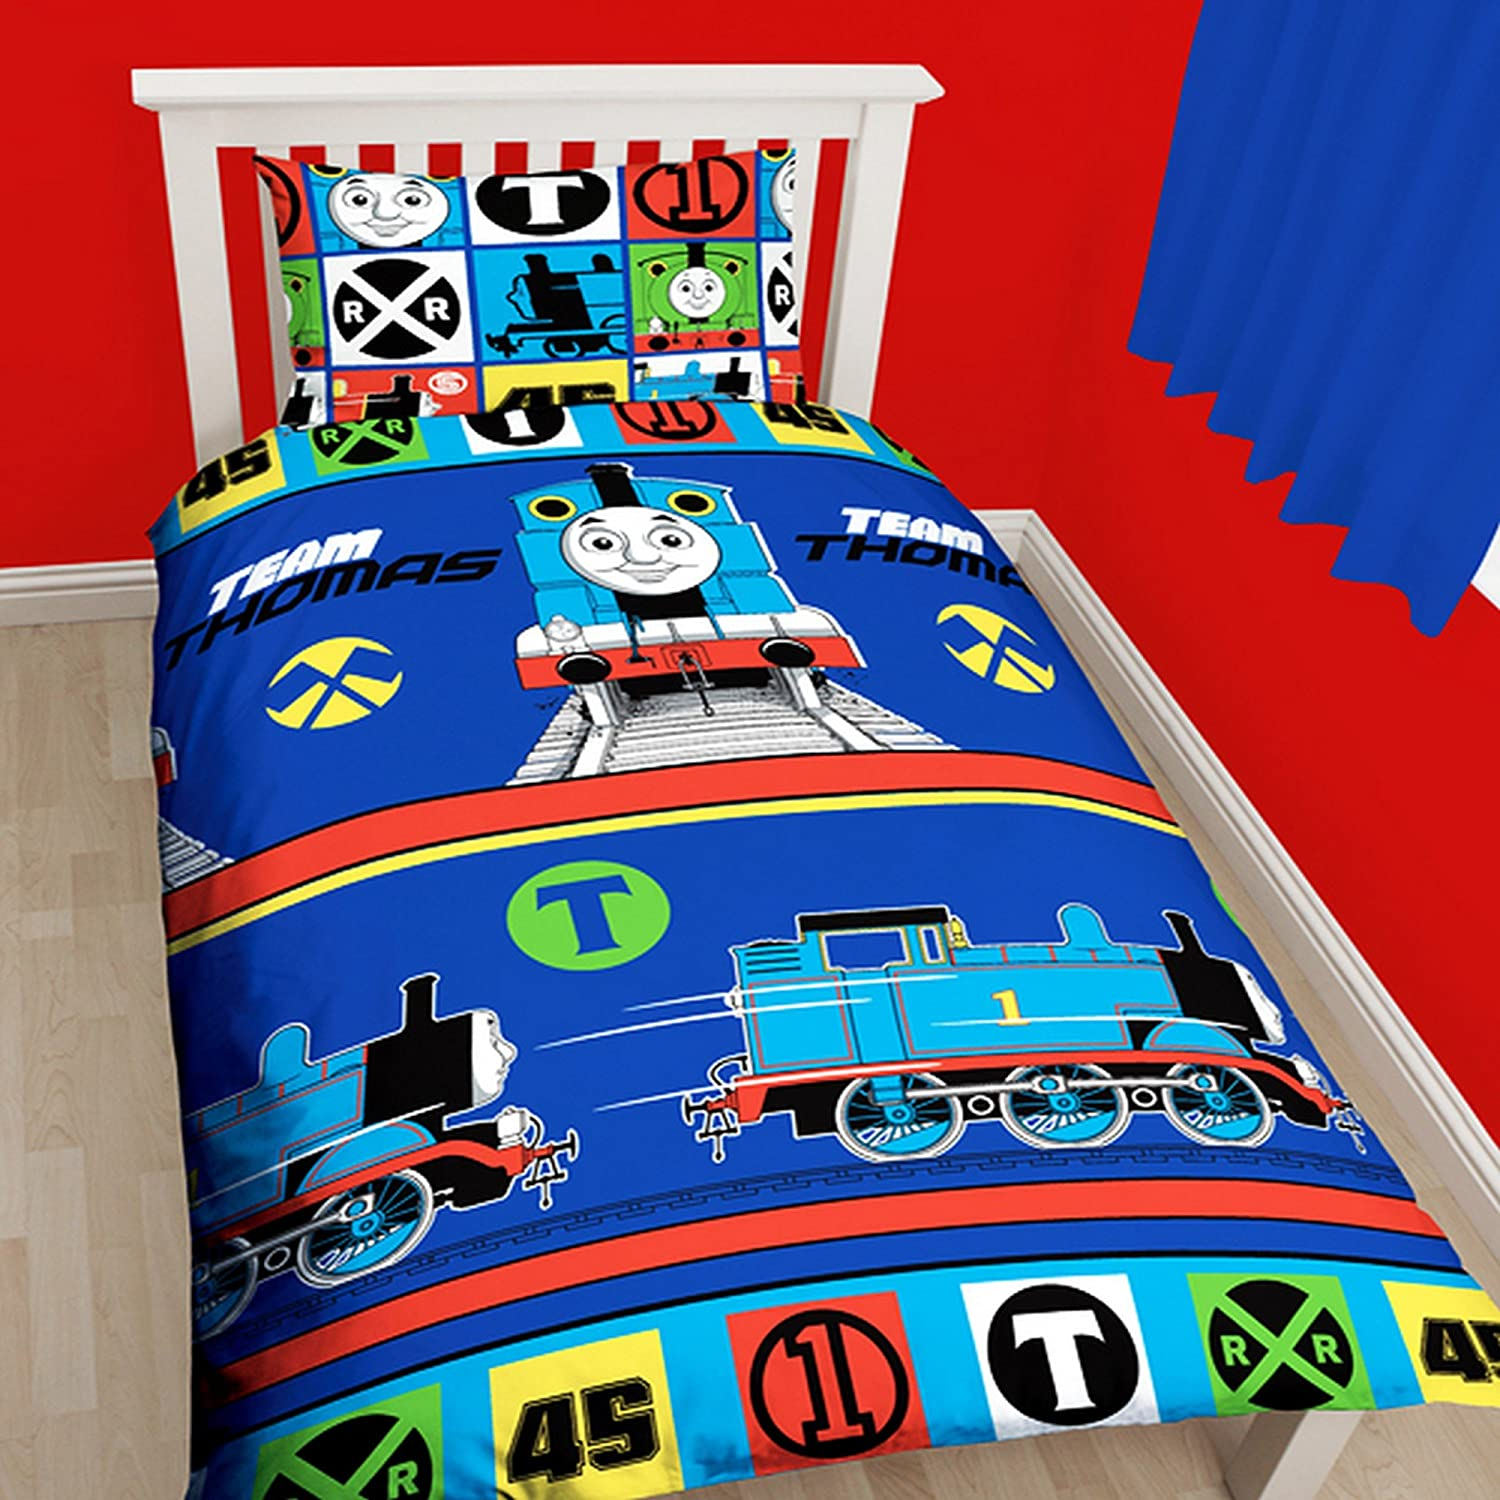 Thomas The Tank 'Team' Single Duvet Set - Repeat Print Design Character World TTTTEMDS002UK1